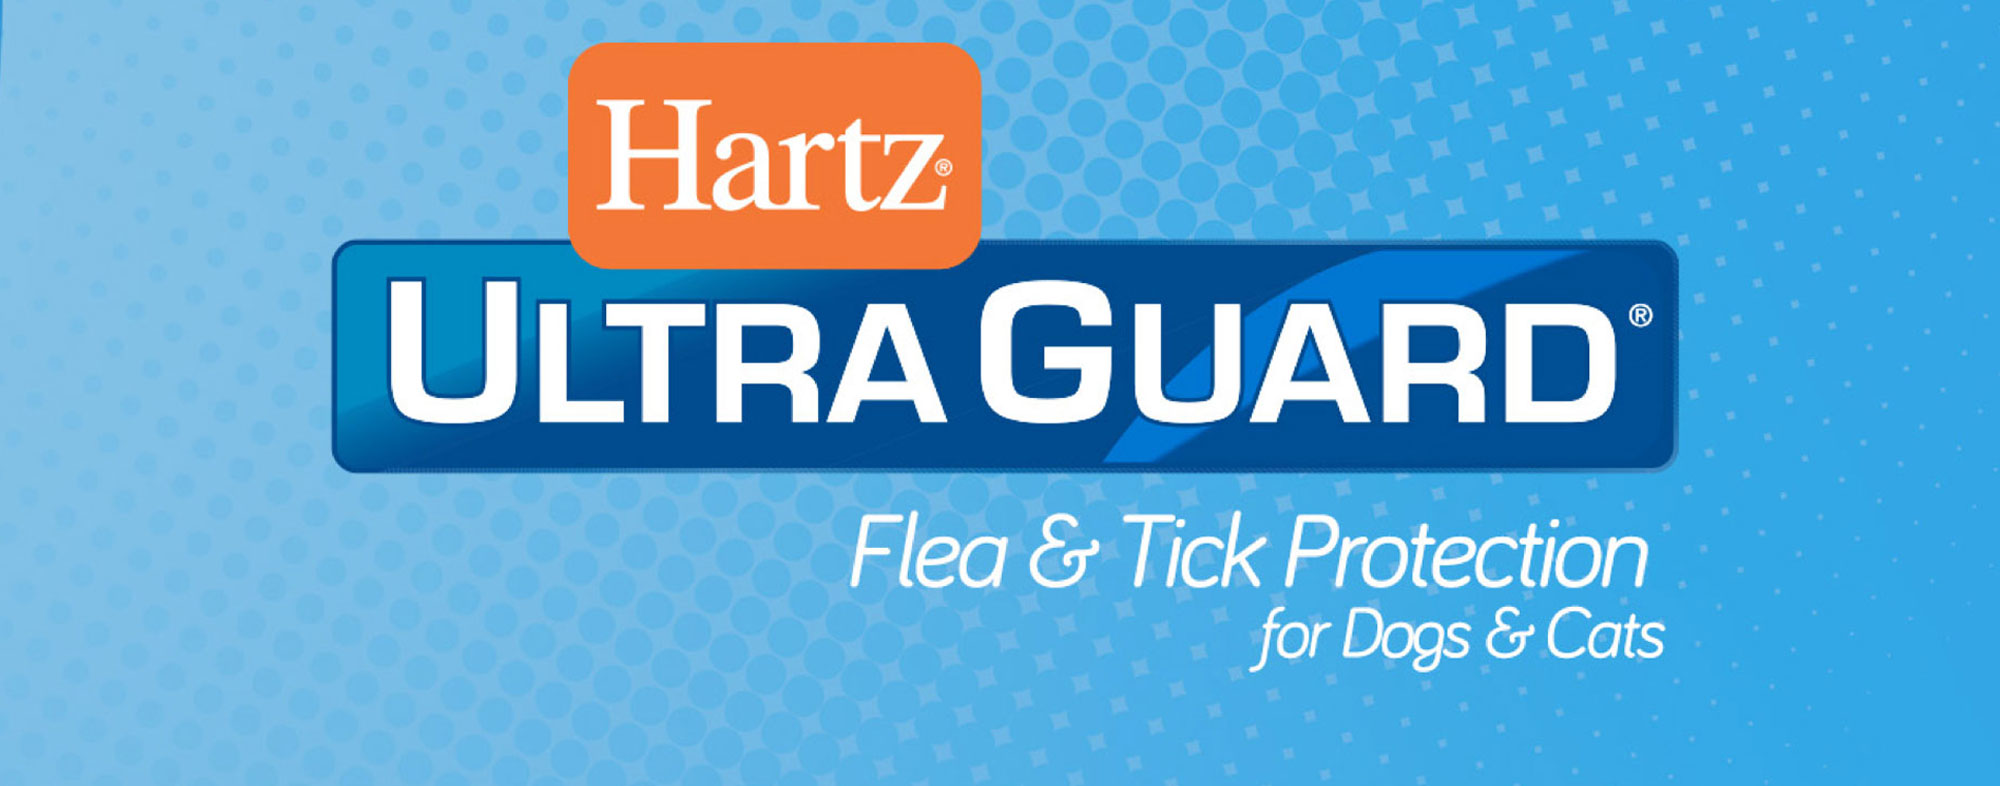 With a low toxicity, Hartz UltraGuard® is safe for dogs and cats. Learn more about Hartz product safety.